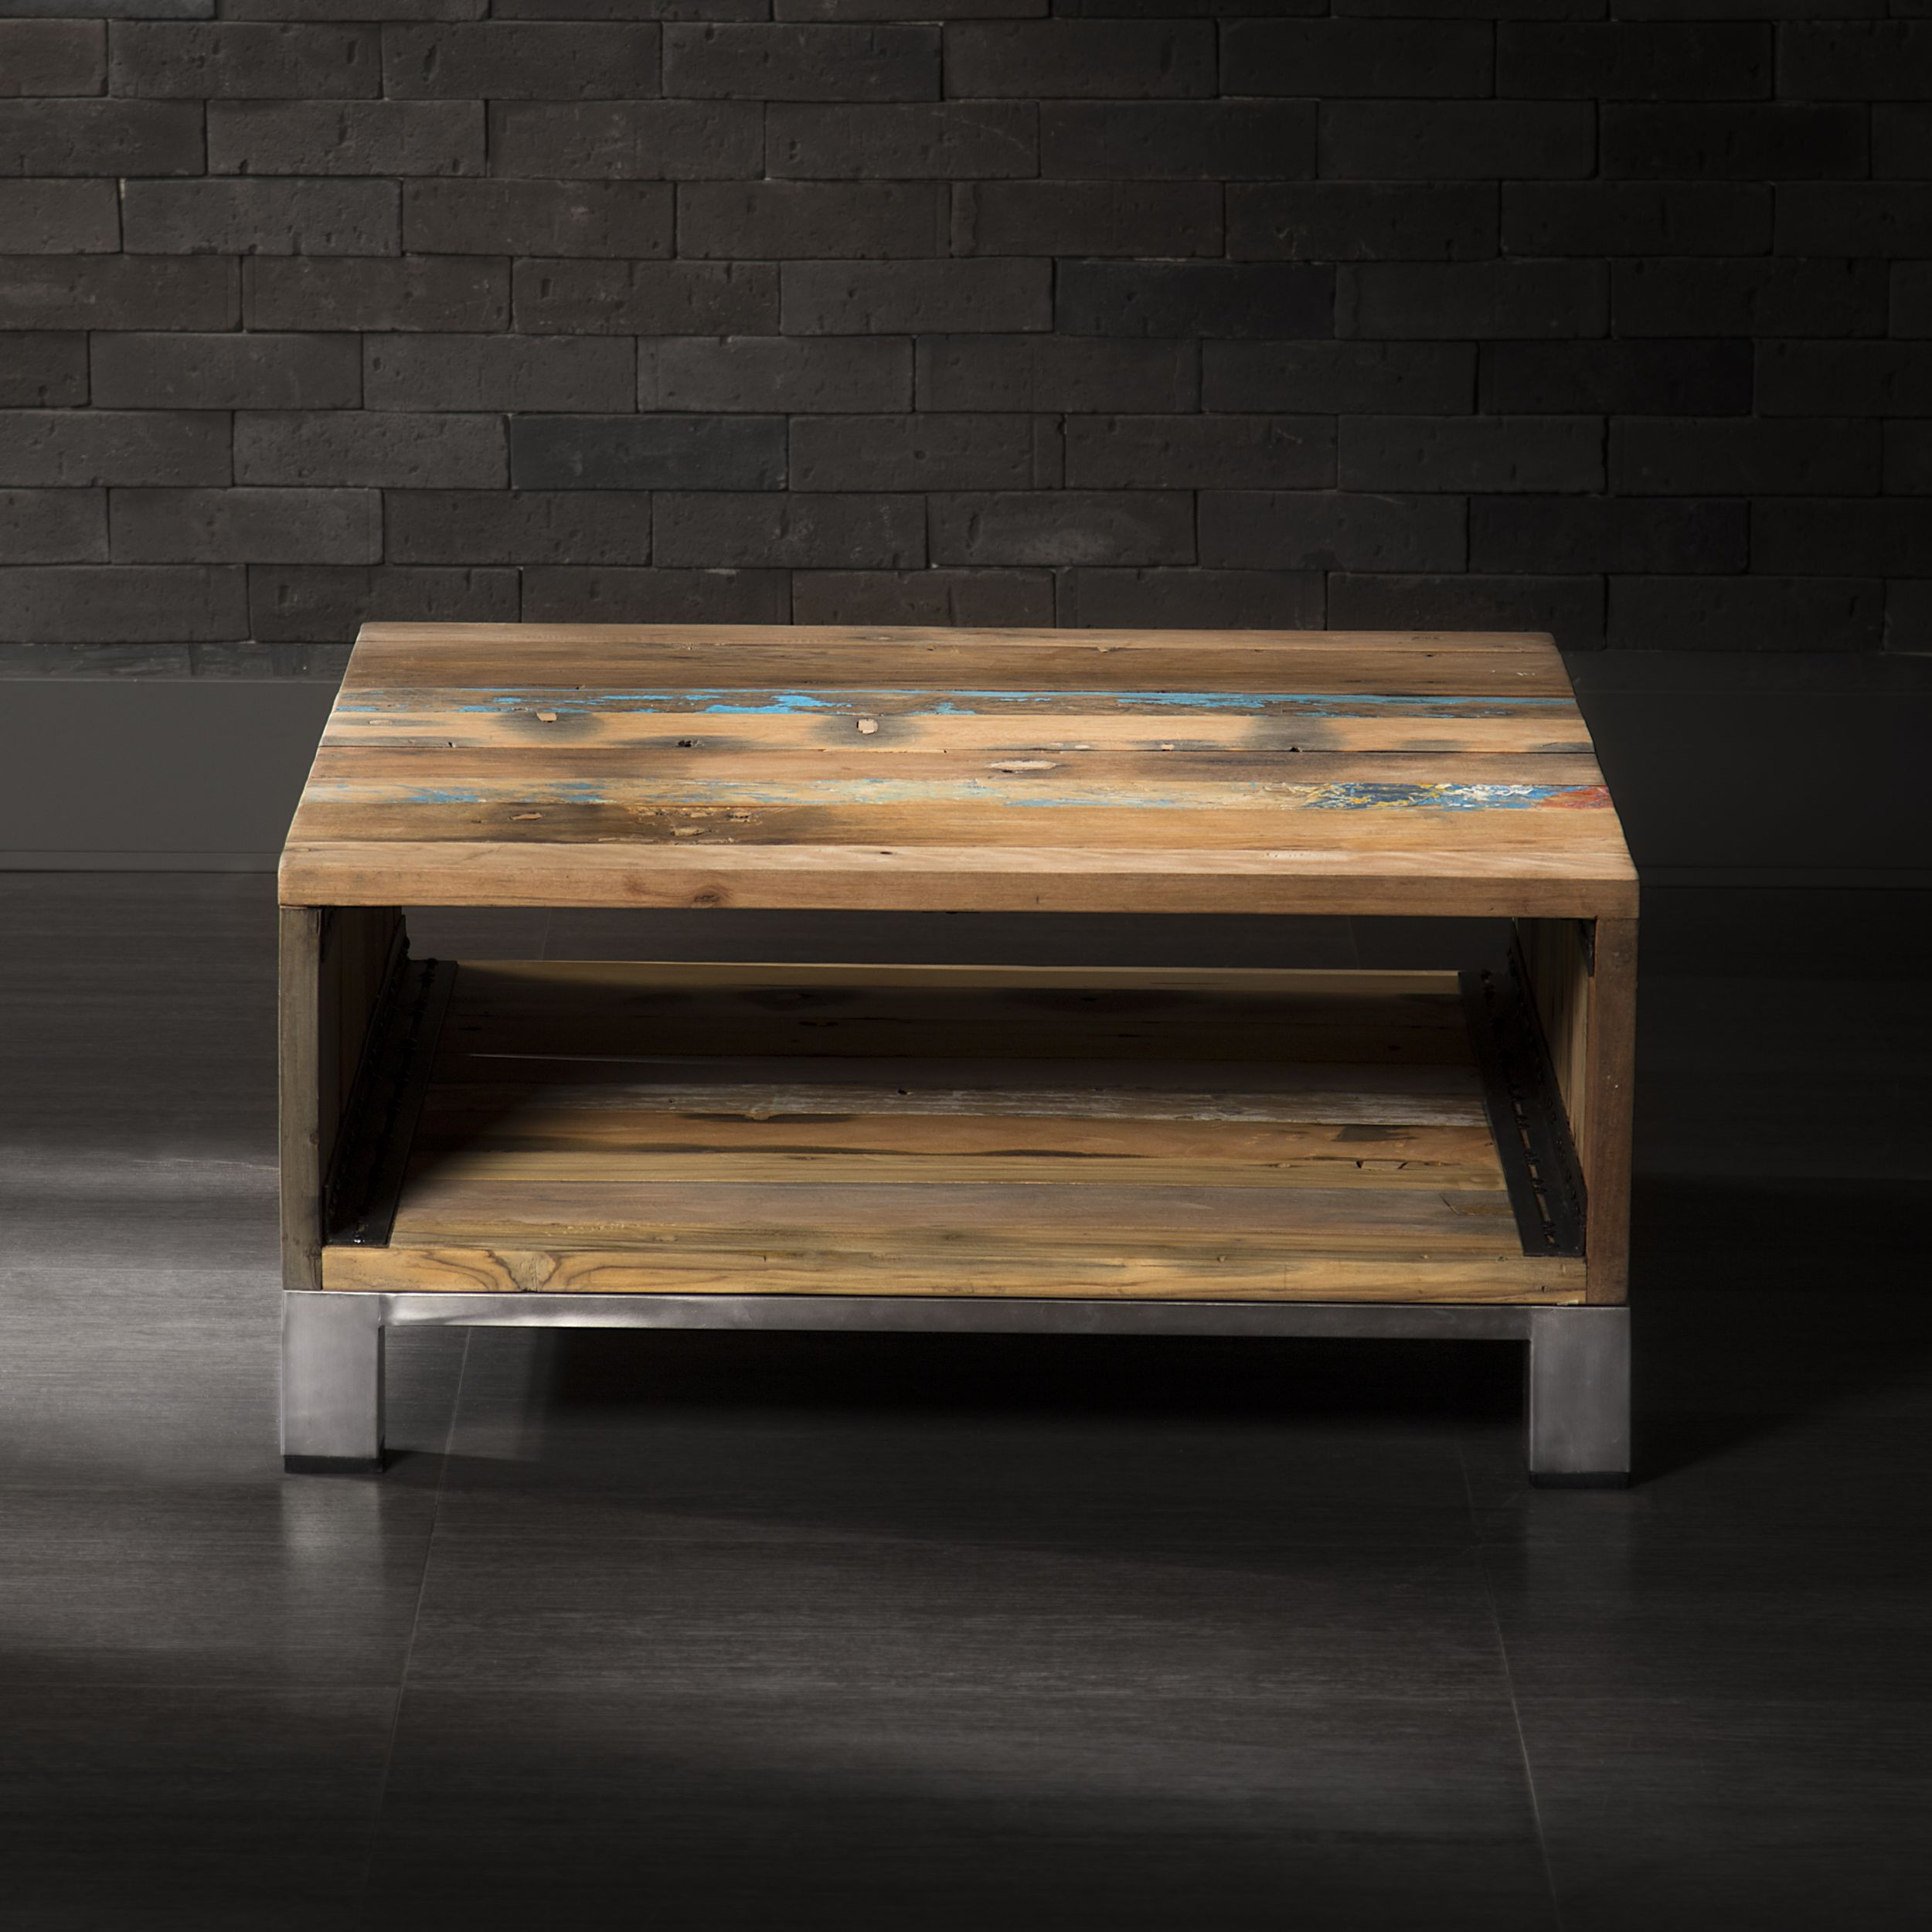 Coffee Table Made Of Recycled Boat Wood Bois Recycle Mobilier De Salon Table Cafe